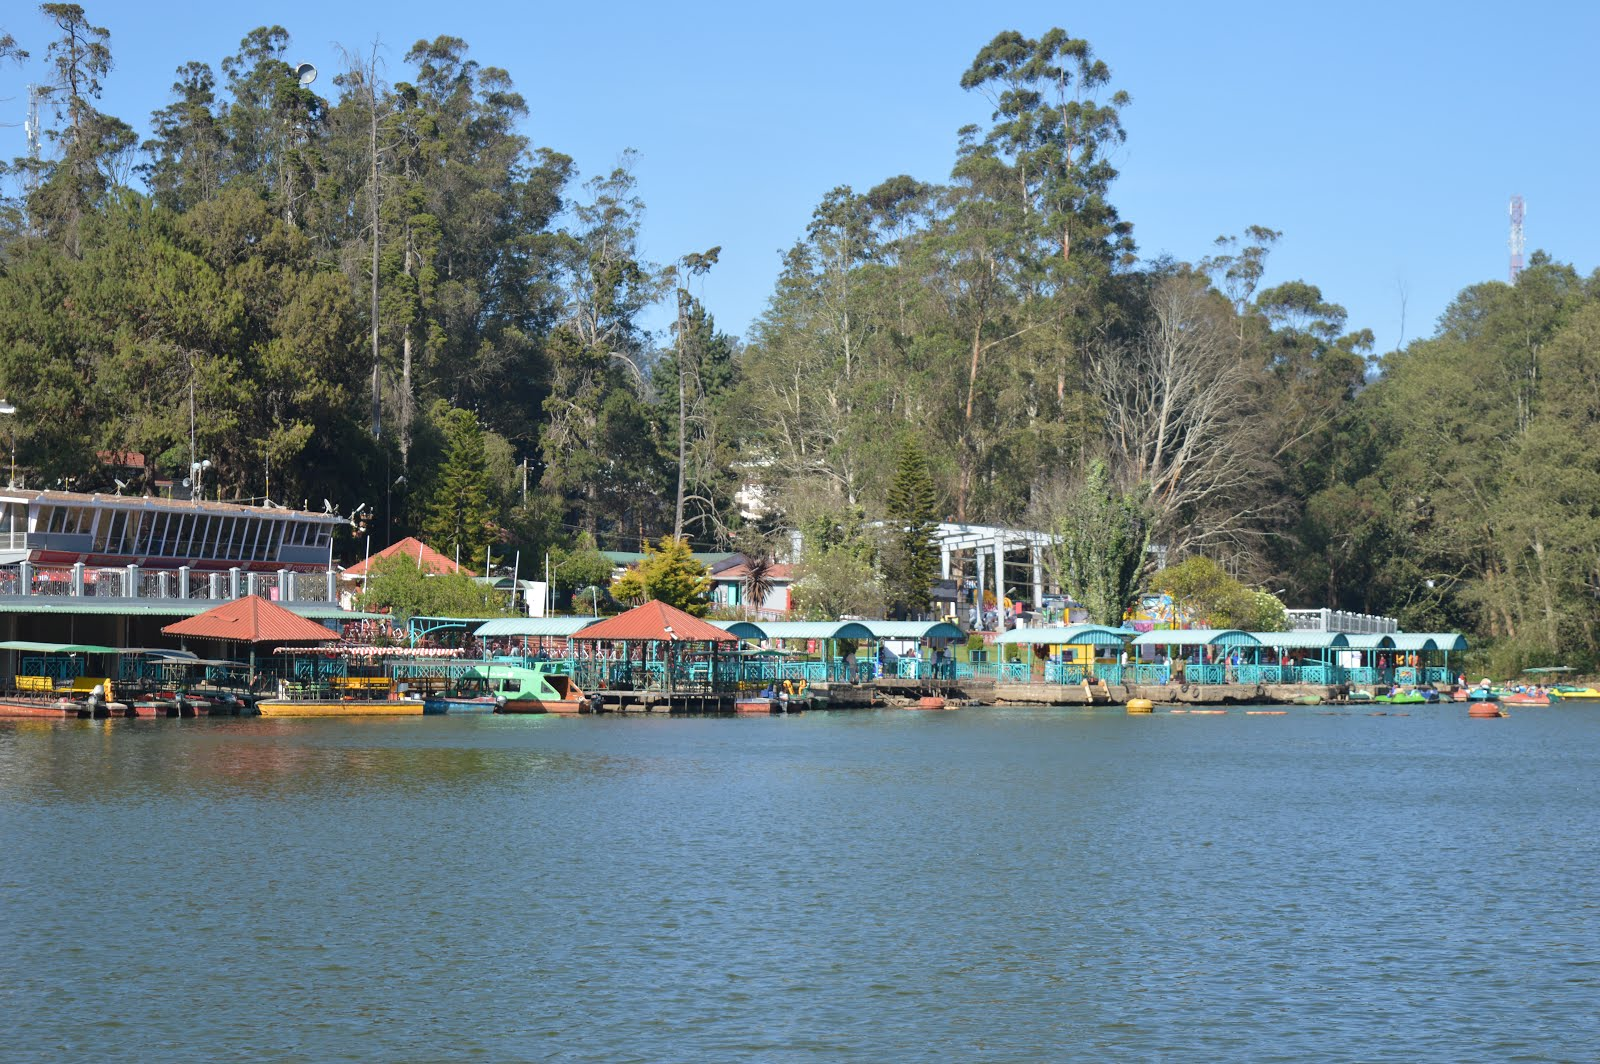 boat point, ooty lake, ooty; shiv sangal